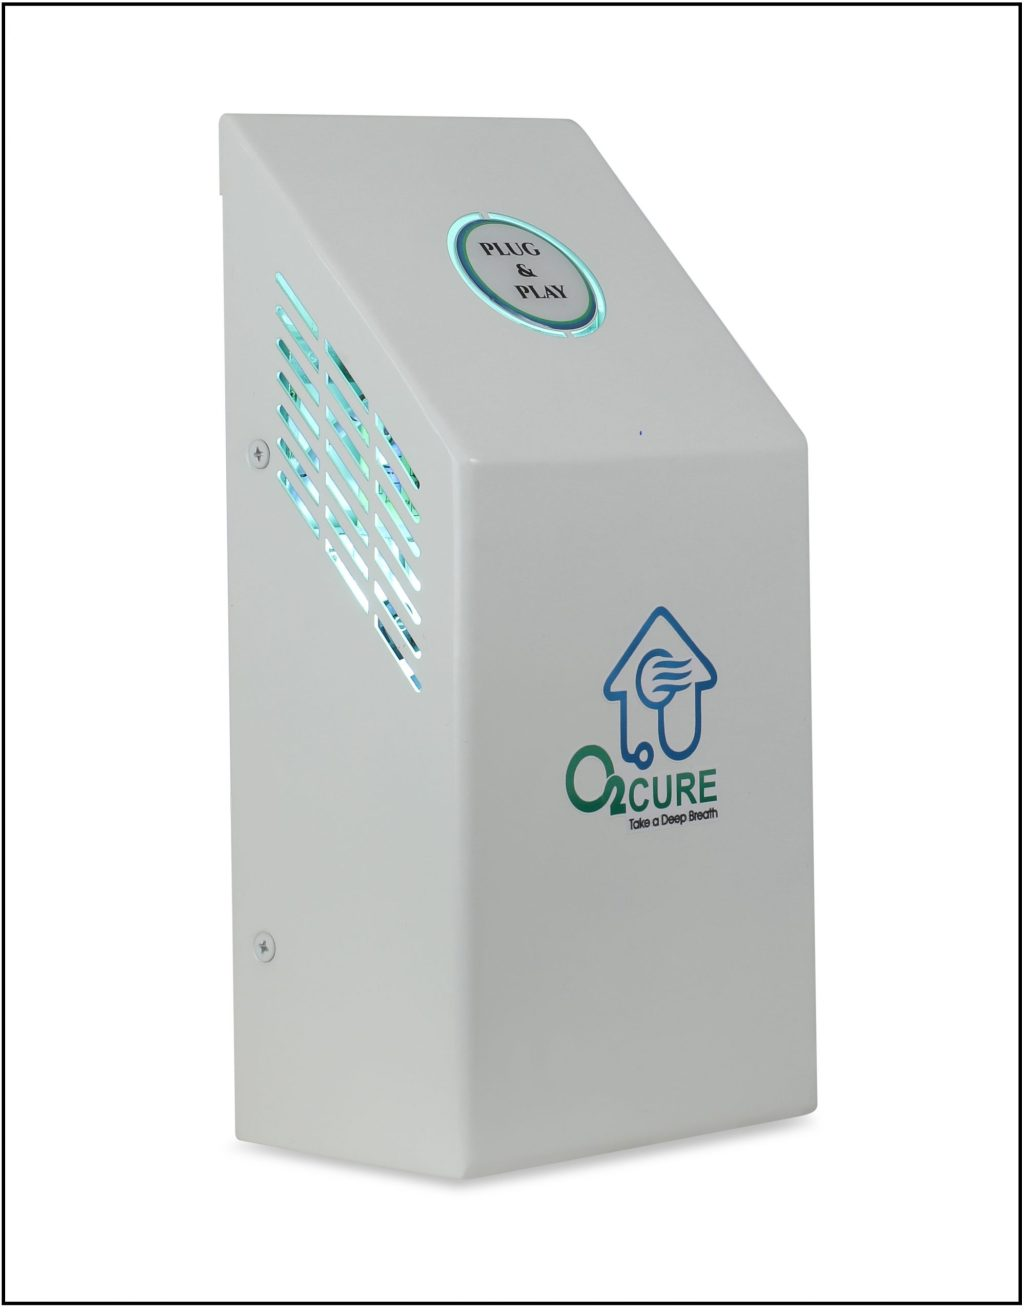 Plug & Play a lightweight air purifier, successfully proven & tested for neutralizing the novel Coronavirus upto 99%